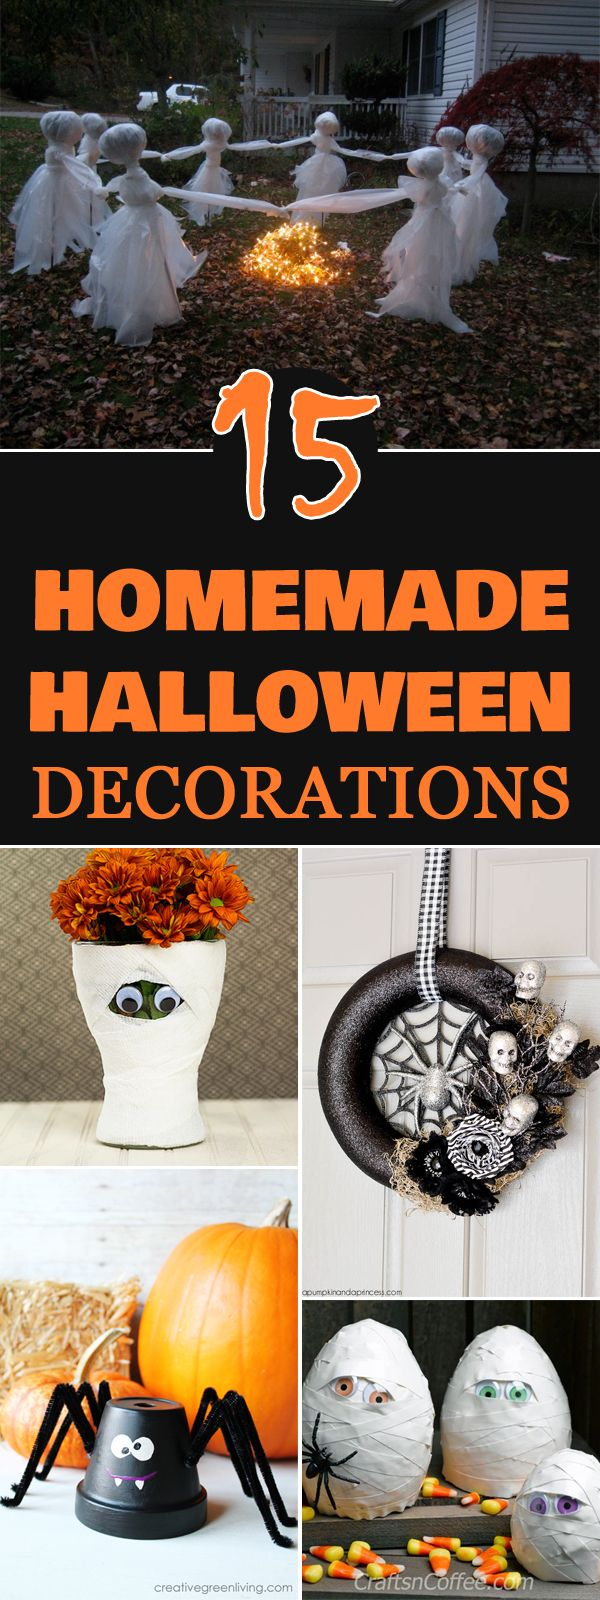 Diytotry 15 Easy Homemade Halloween Decorations Art Craft Home Projects Pinterest